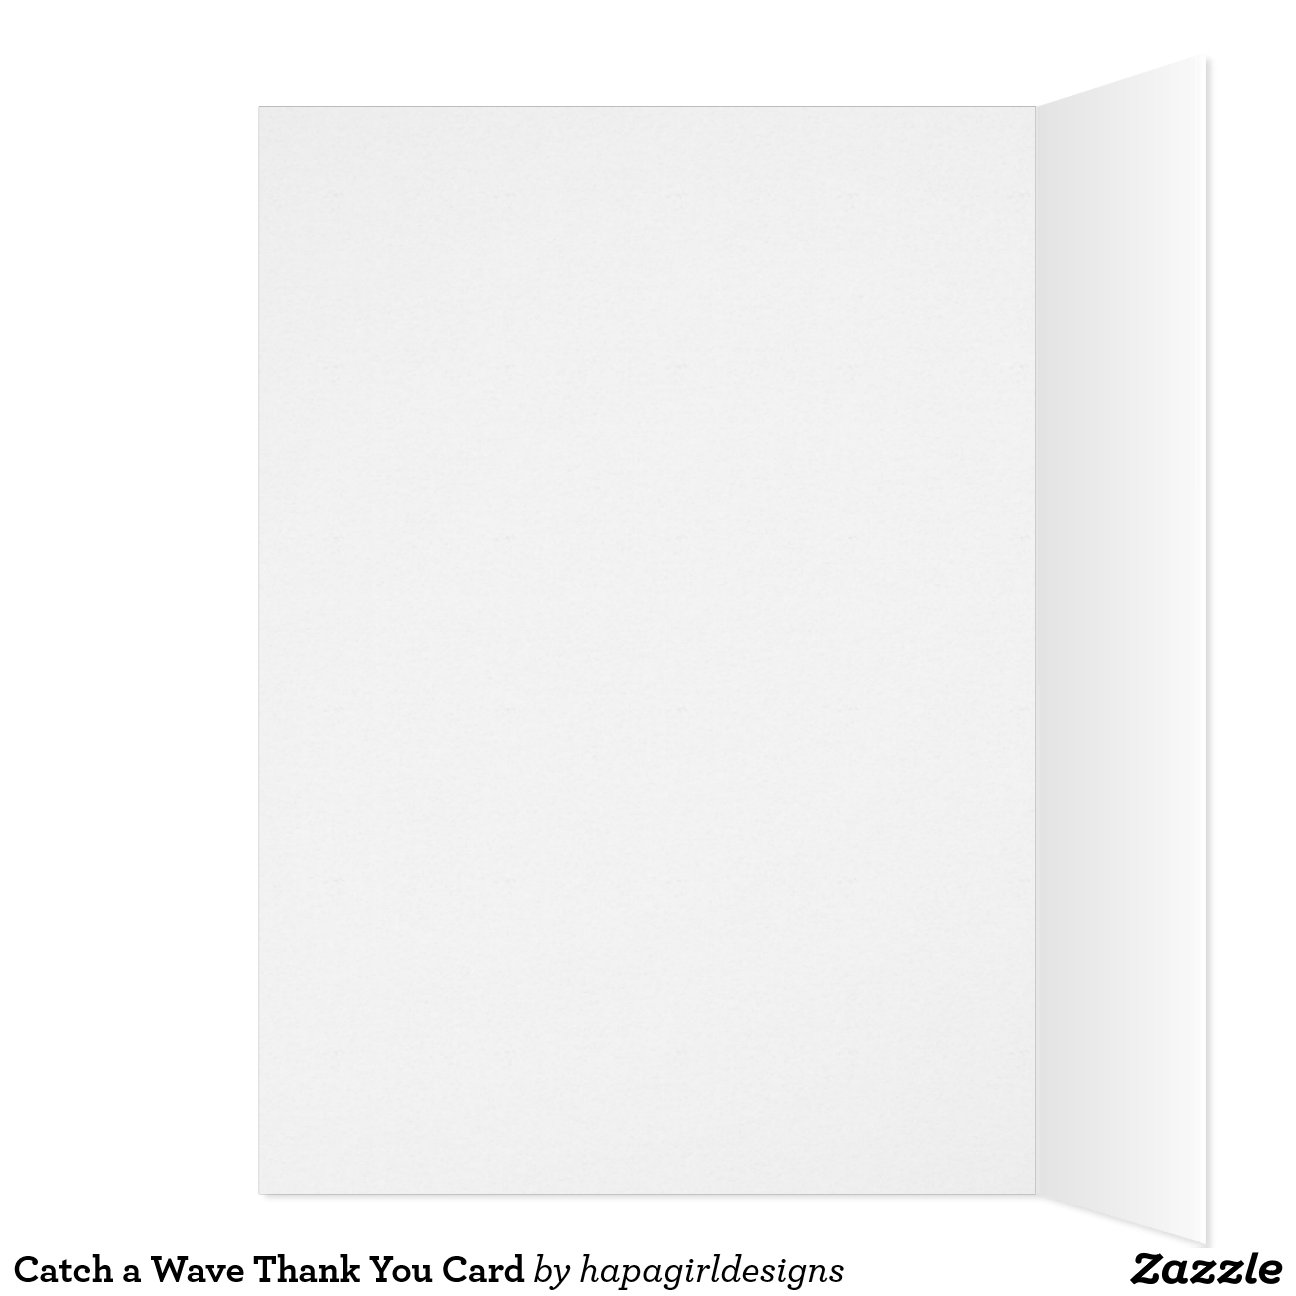 catch a wave thank you card simple wave design